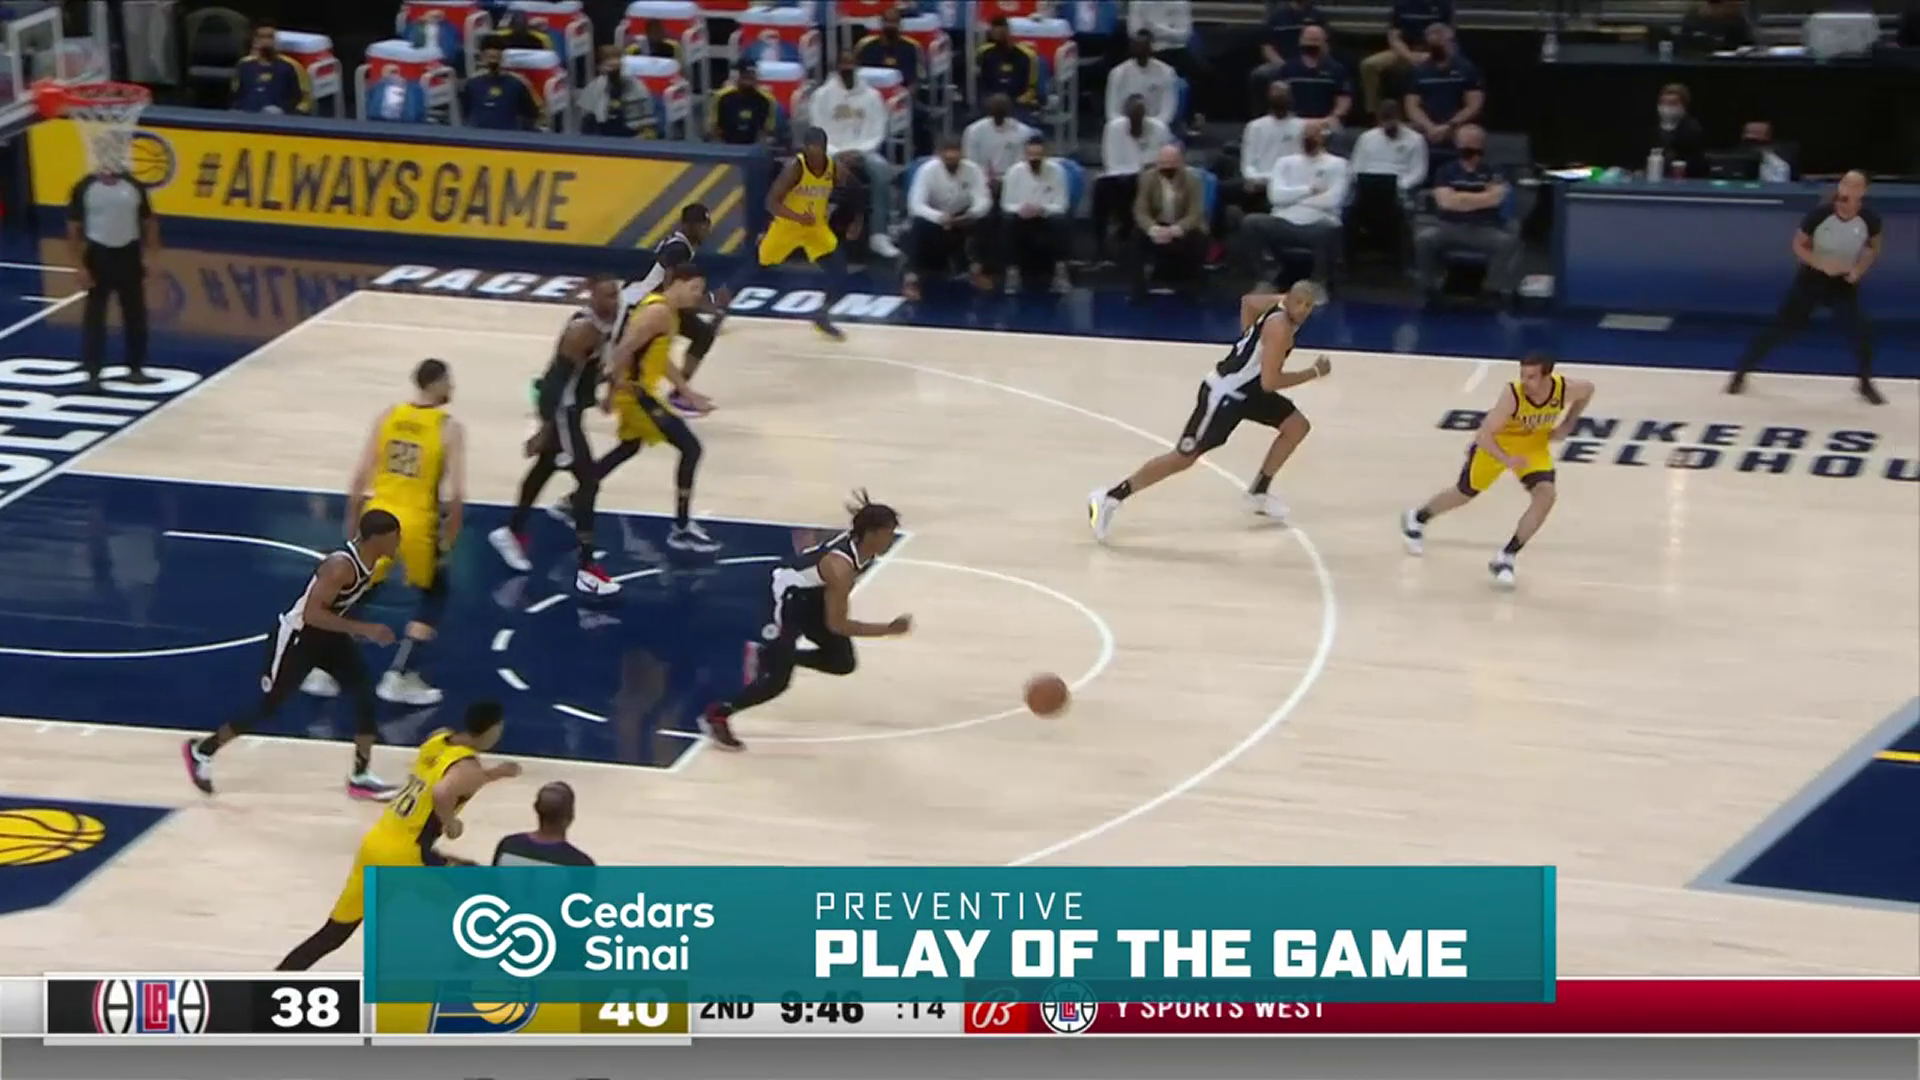 Cedars-Sinai Preventive Play of the Game | Clippers vs Pacers (4.13.21)